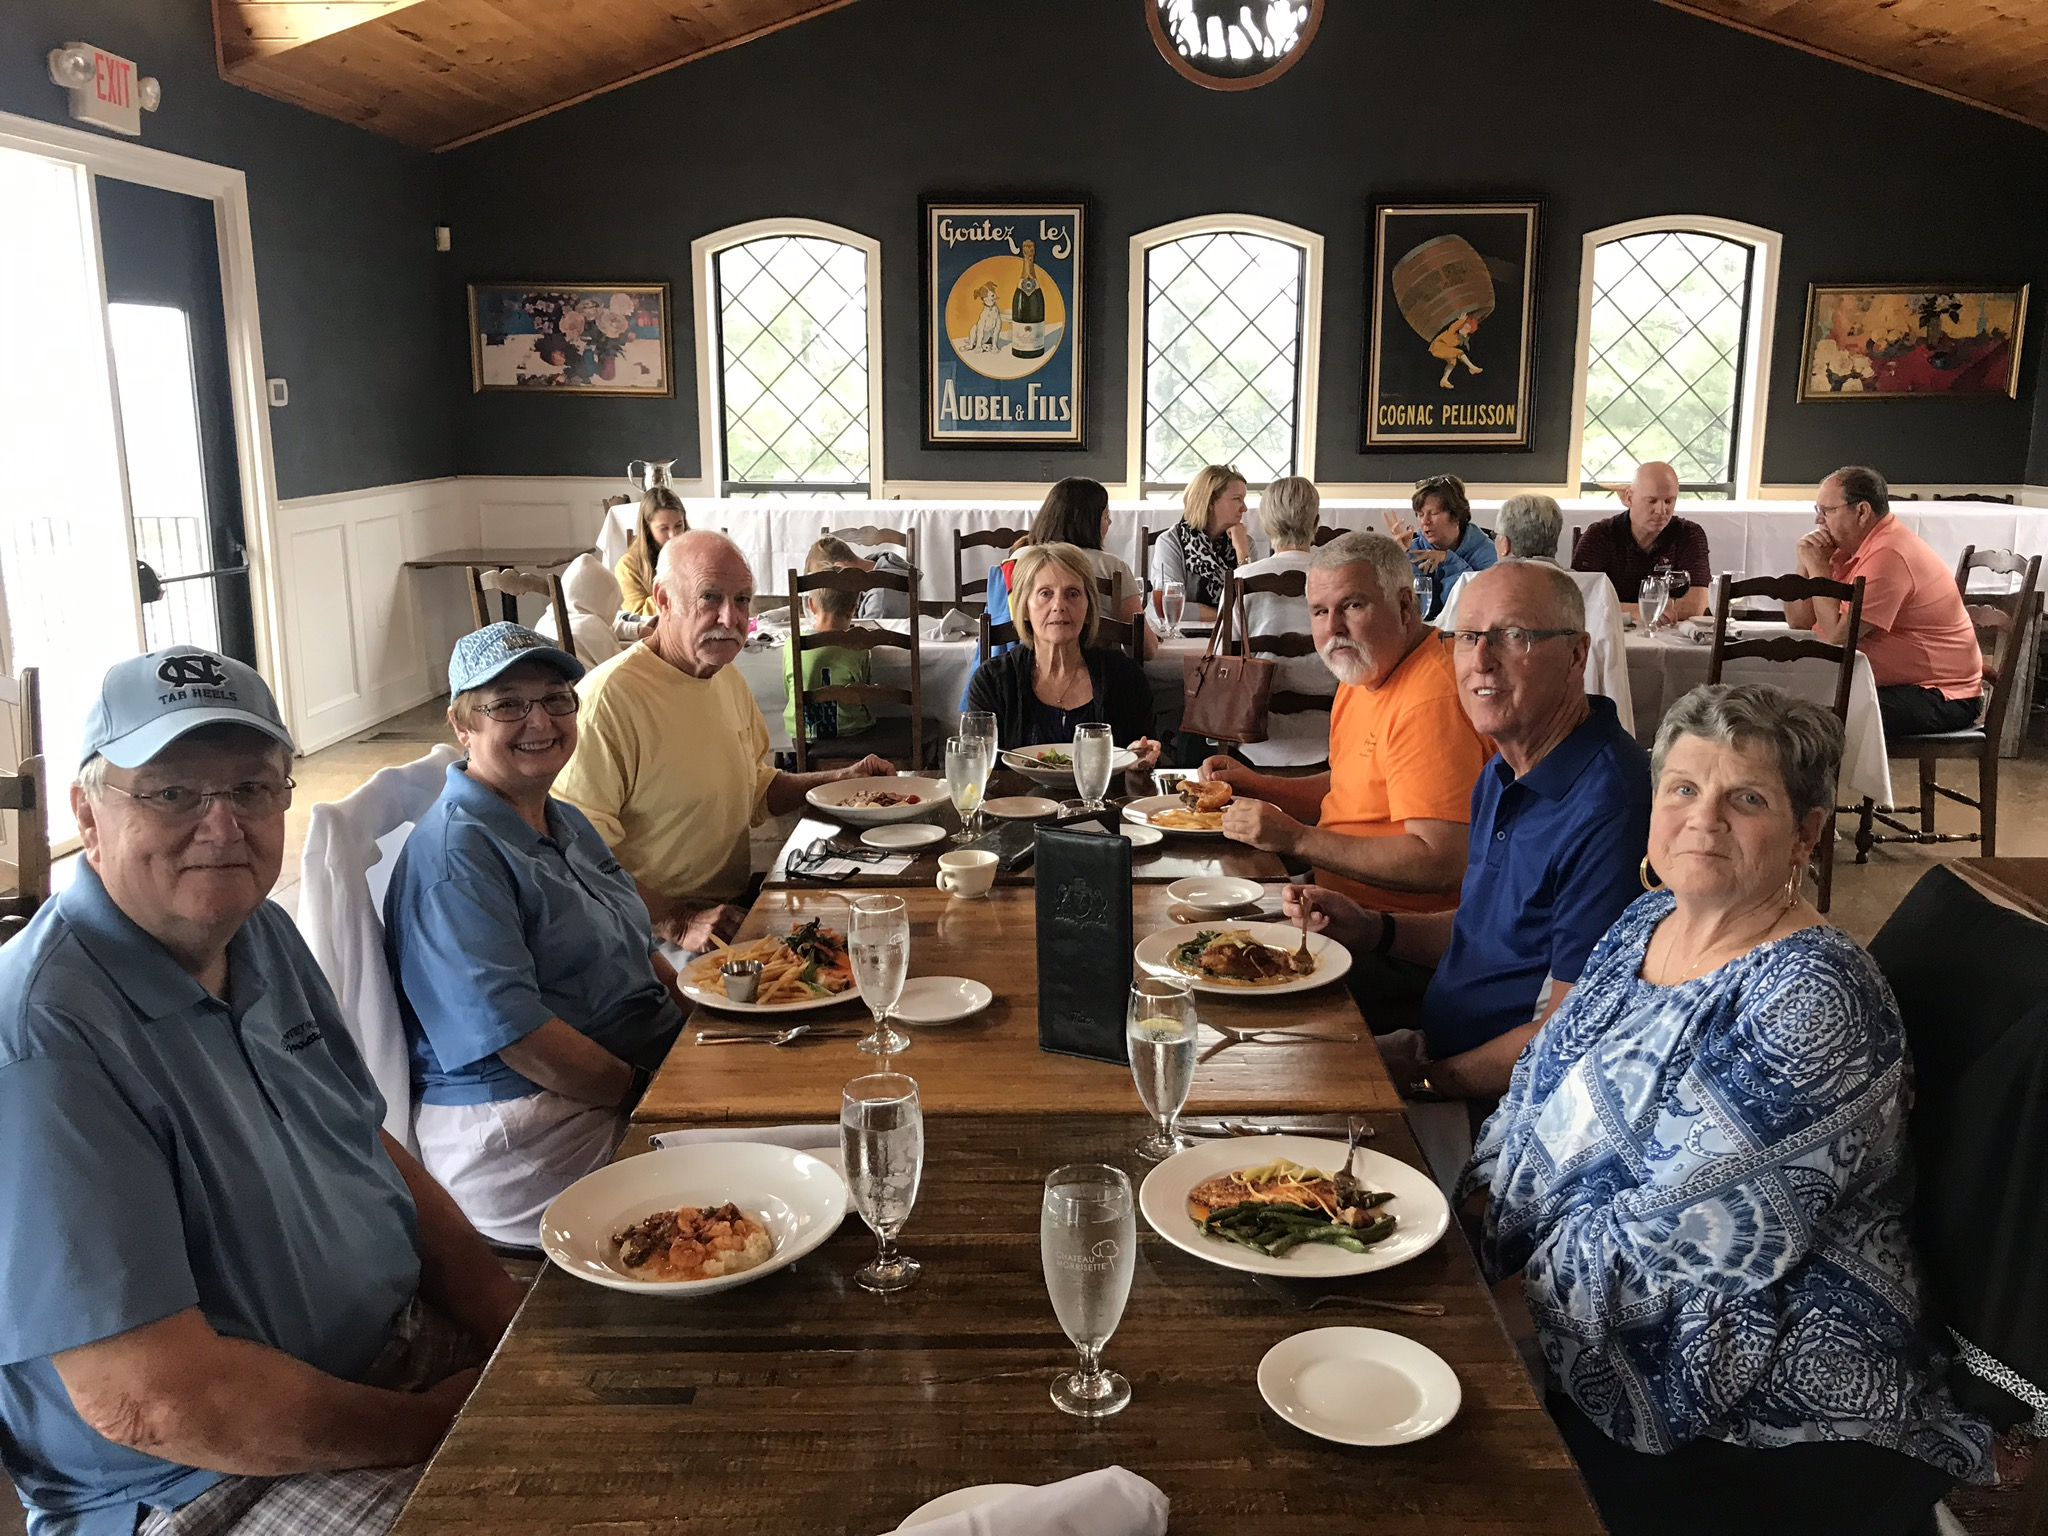 Delicious lunch! Clockwise from left:  Jim & Cathy Pickett, Tom Gagnier, Cindy & Tim Beard, Norbert & Sharon Skolimowski